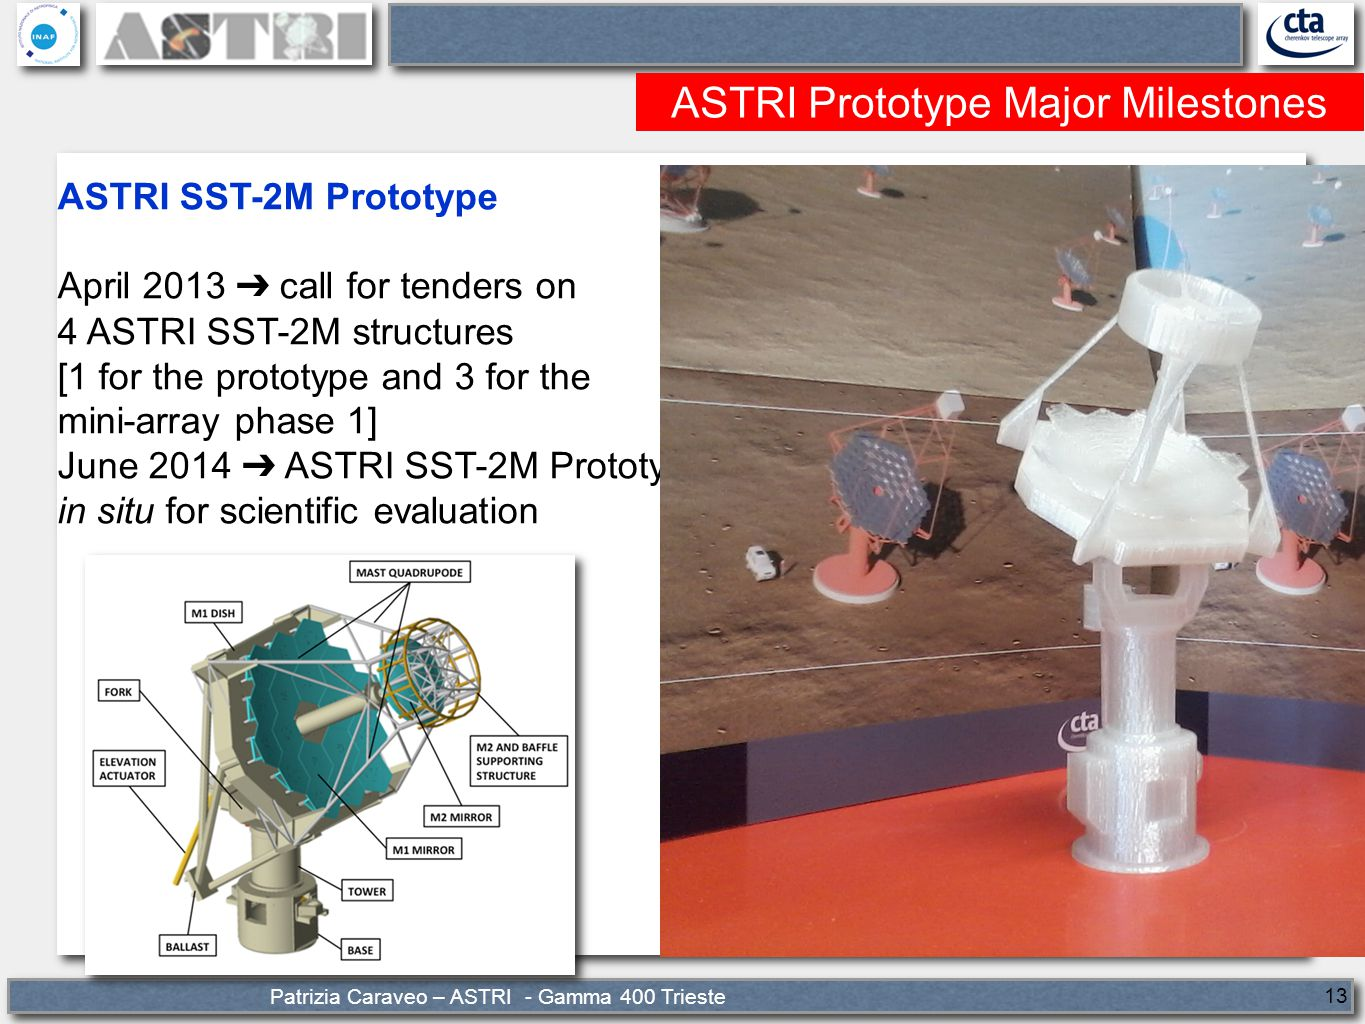 Patrizia Caraveo – ASTRI - Gamma 400 Trieste 13 ASTRI Prototype Major Milestones ASTRI SST-2M Prototype April 2013 ➔ call for tenders on 4 ASTRI SST-2